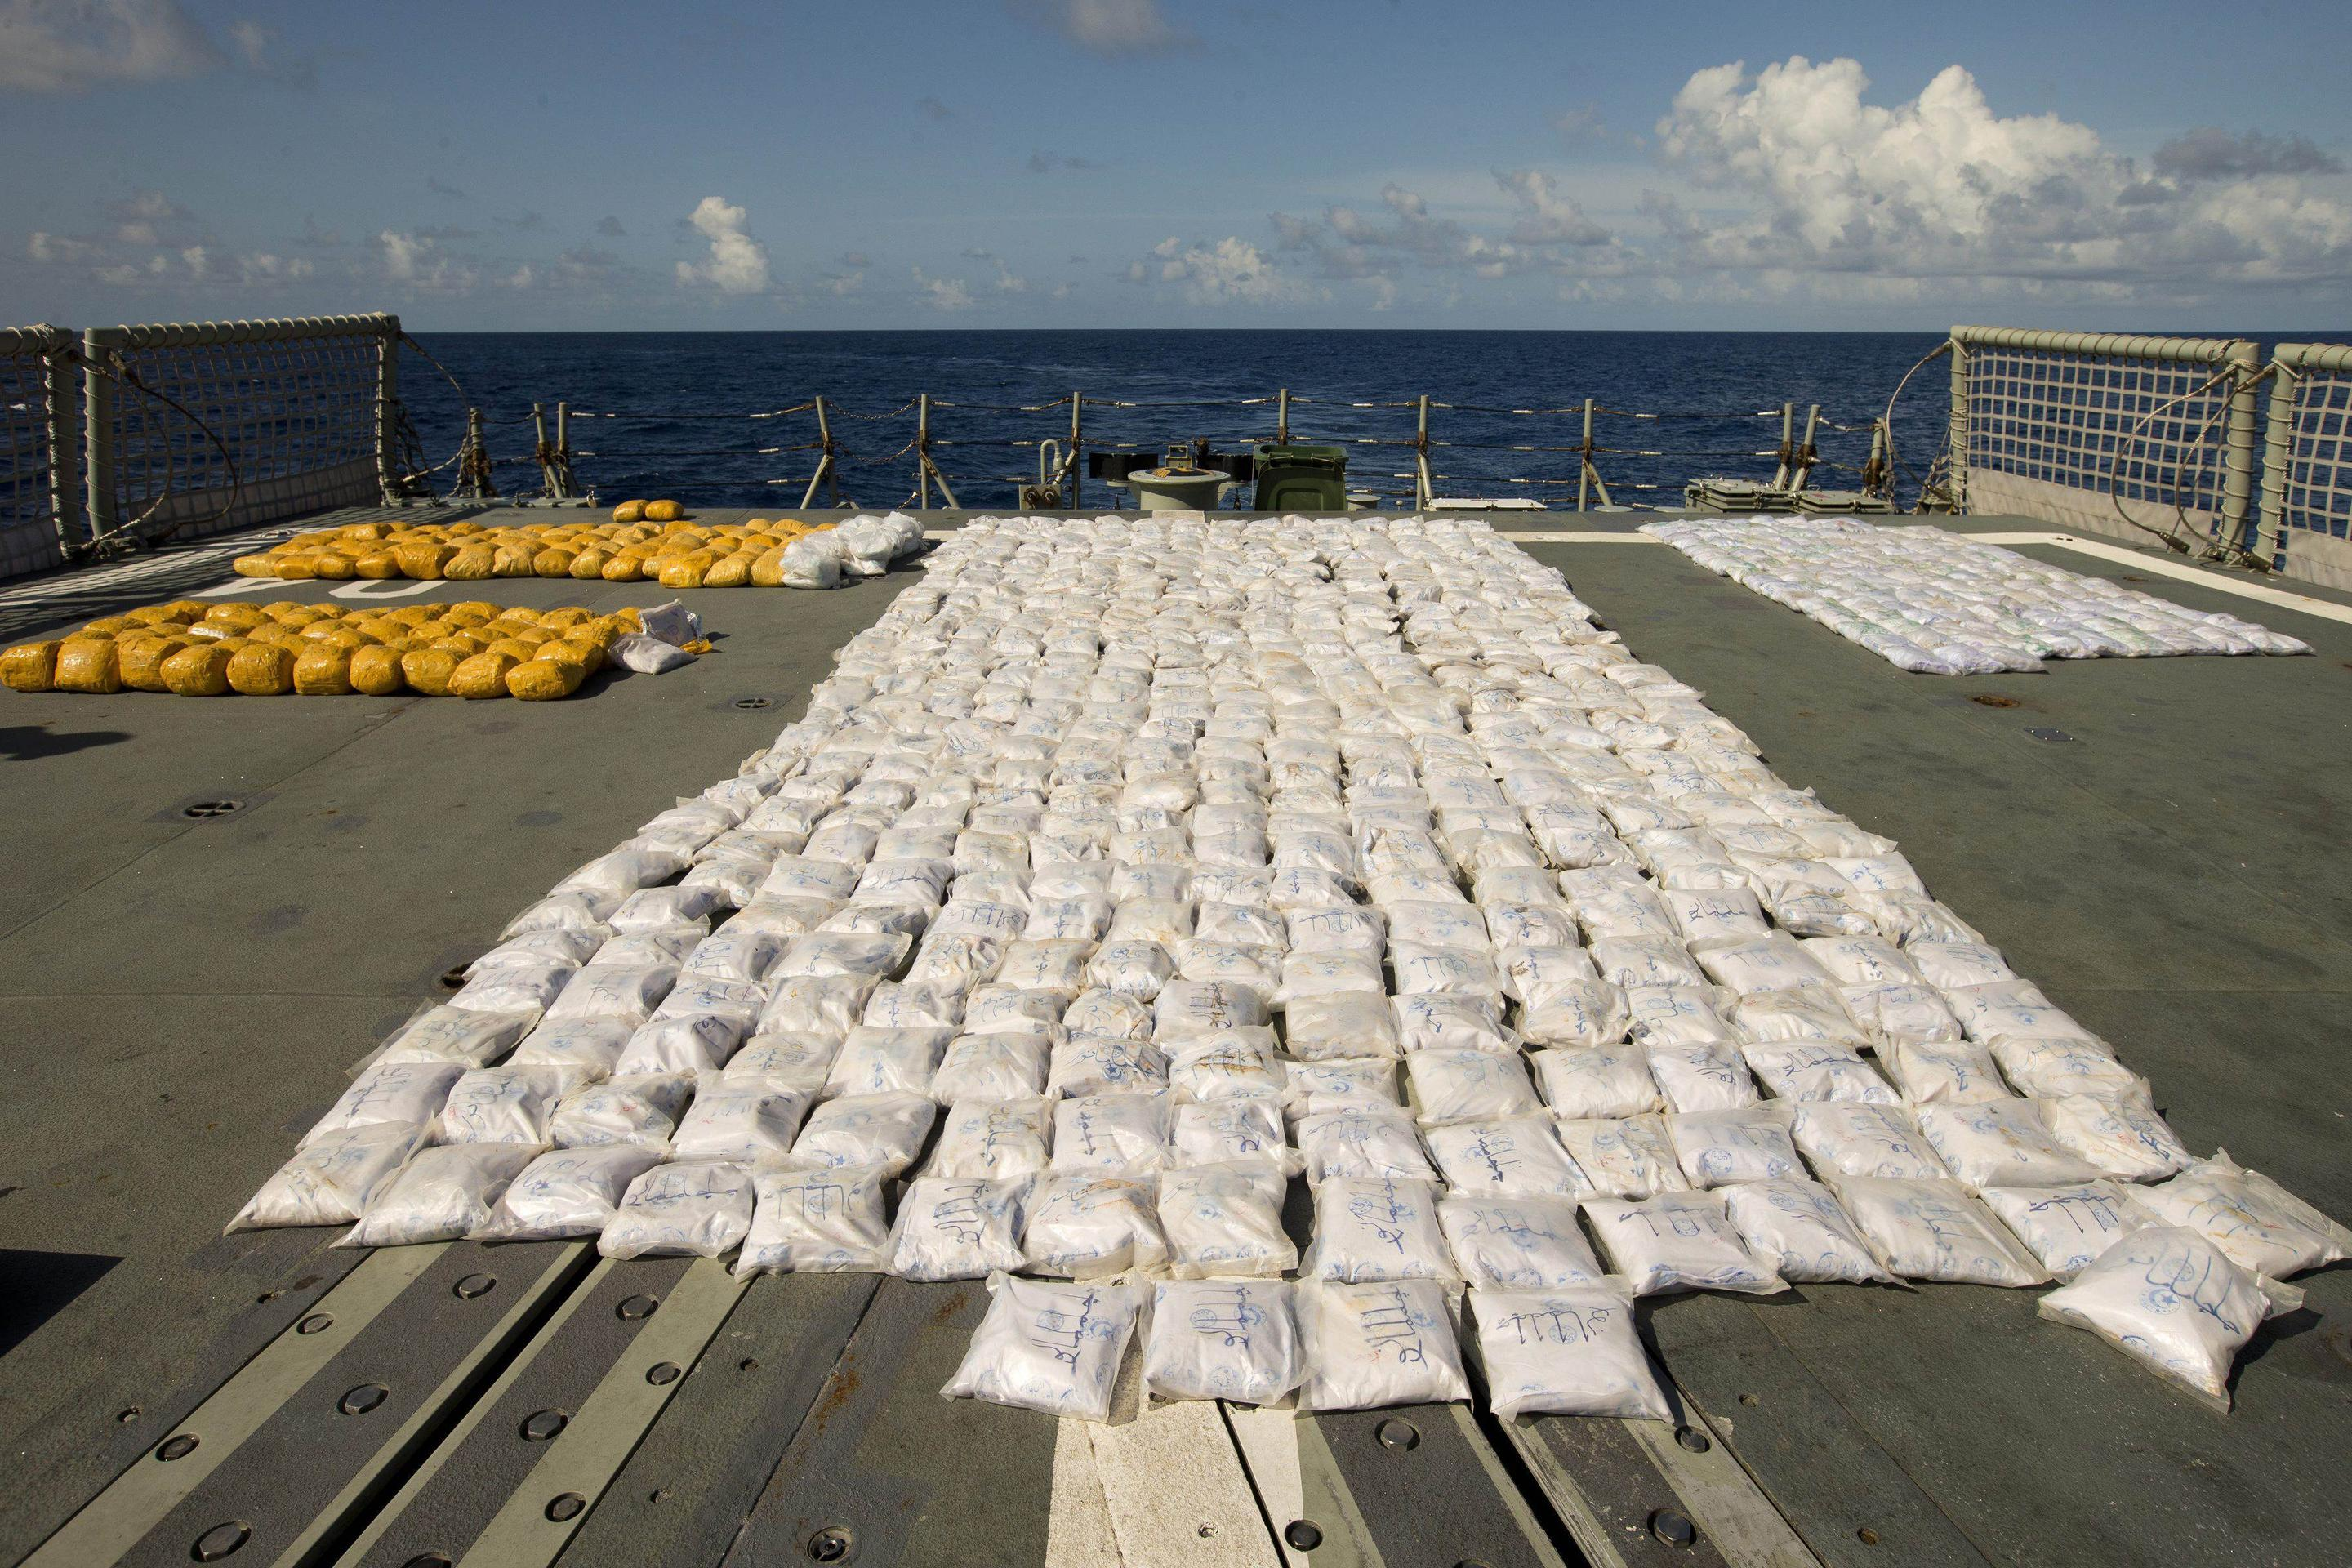 The largest Heroin bust in Australia's history.